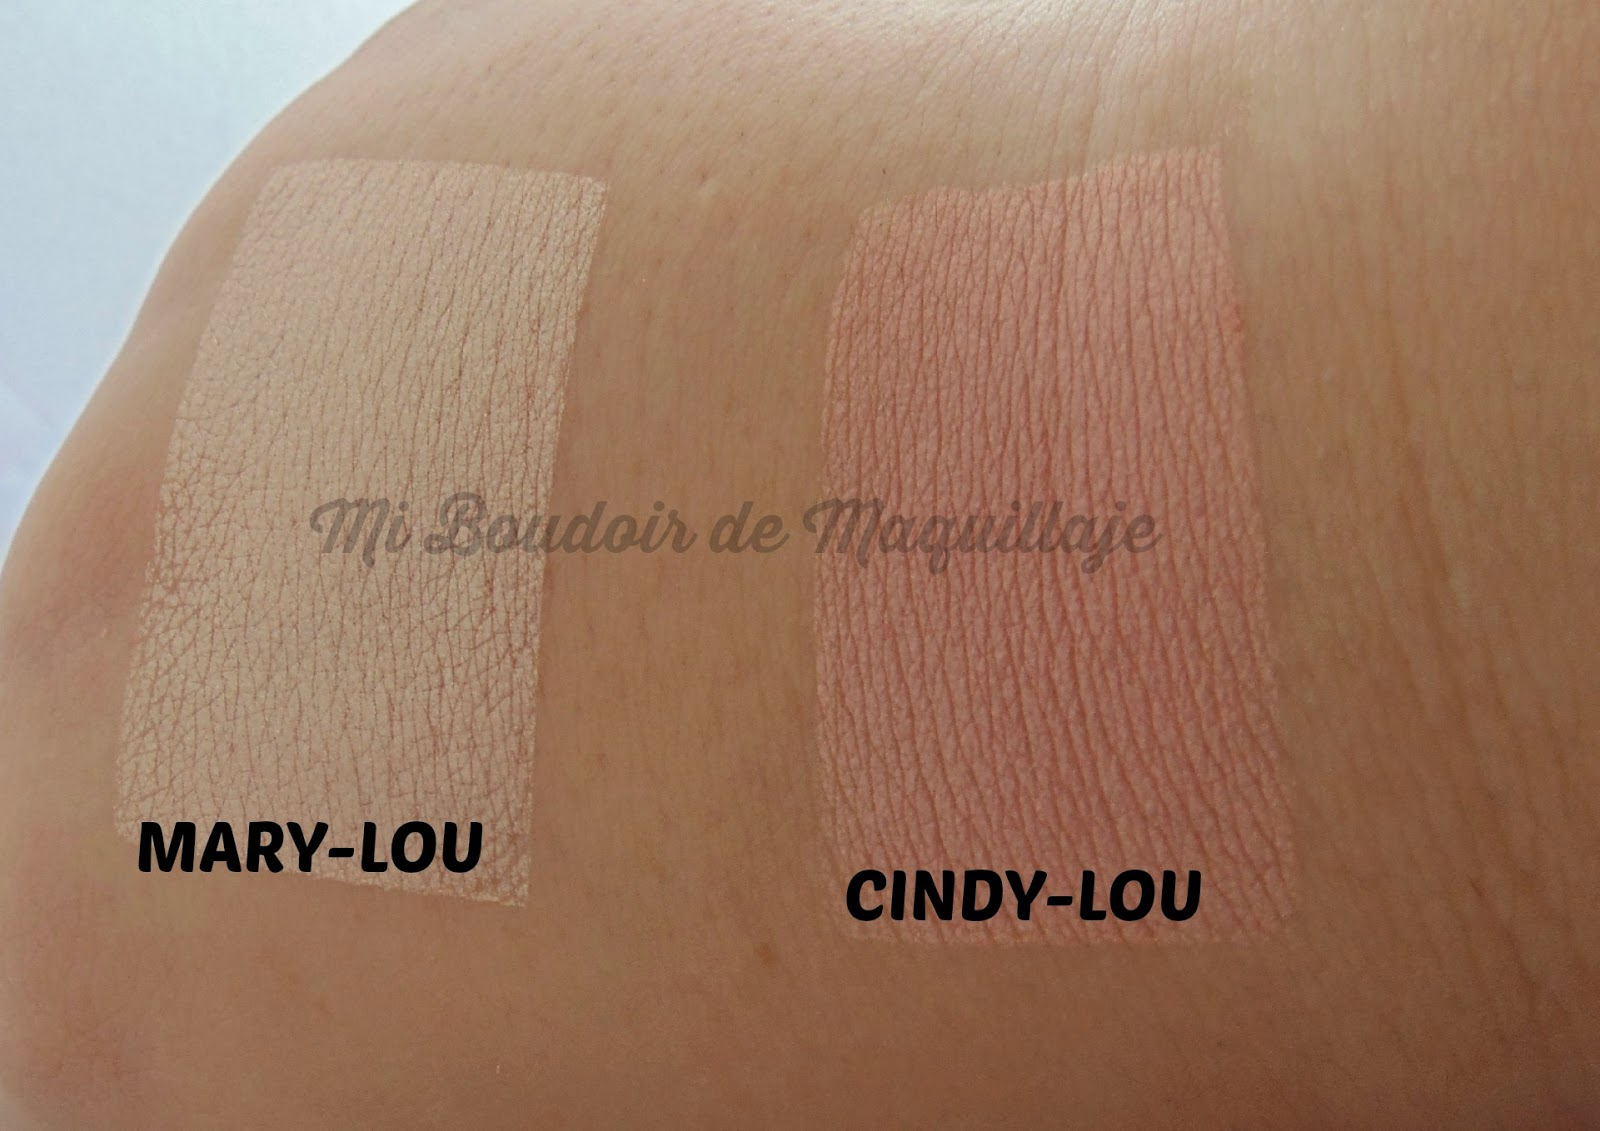 The Balm Mary-Lou Cindy-Lou Manizer swatches